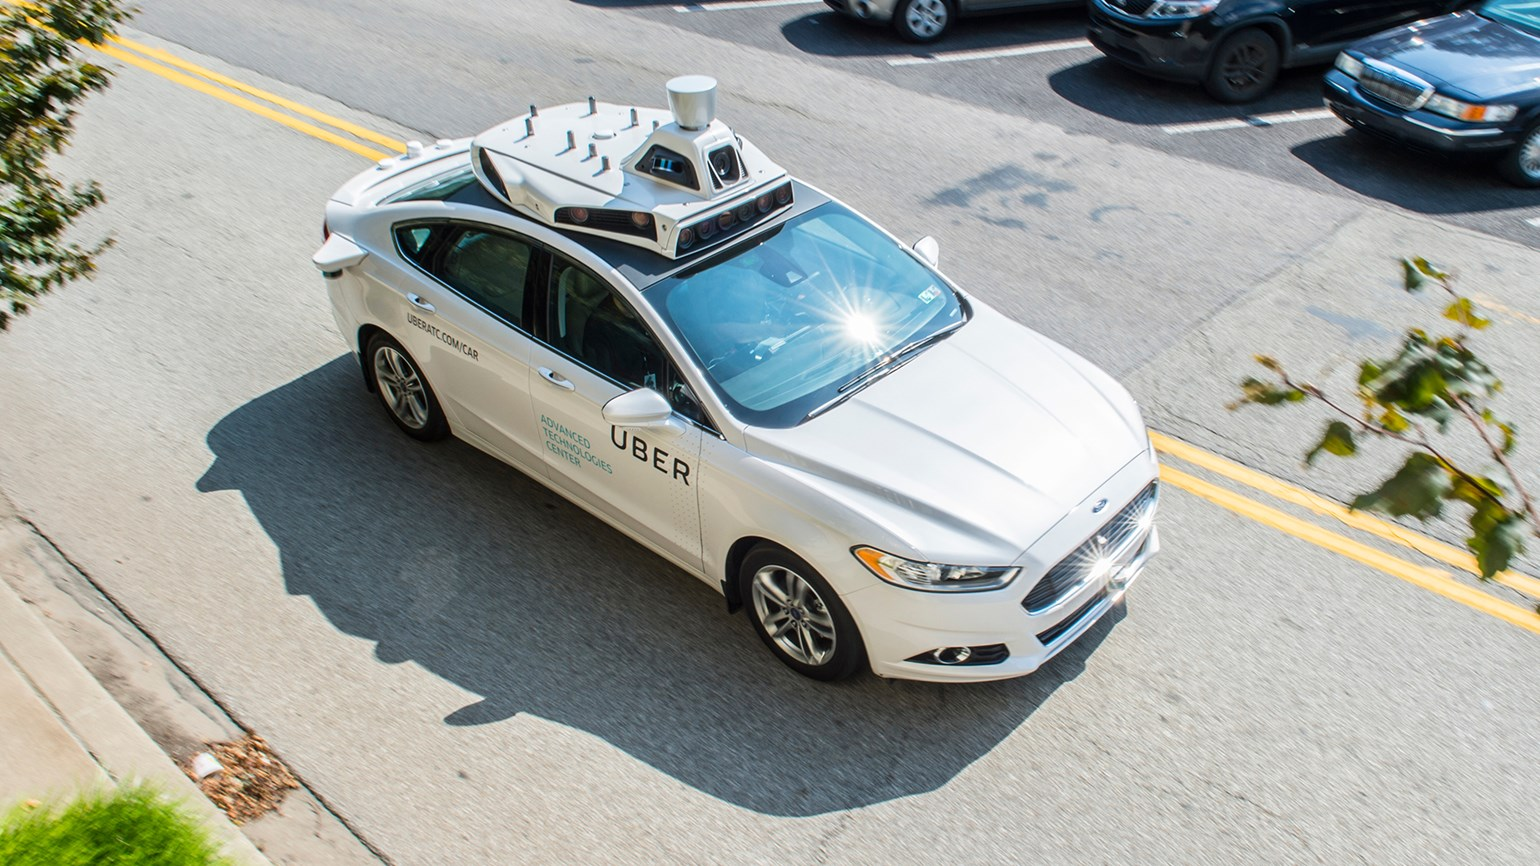 Self-driving Uber cars hit the road in Pittsburgh